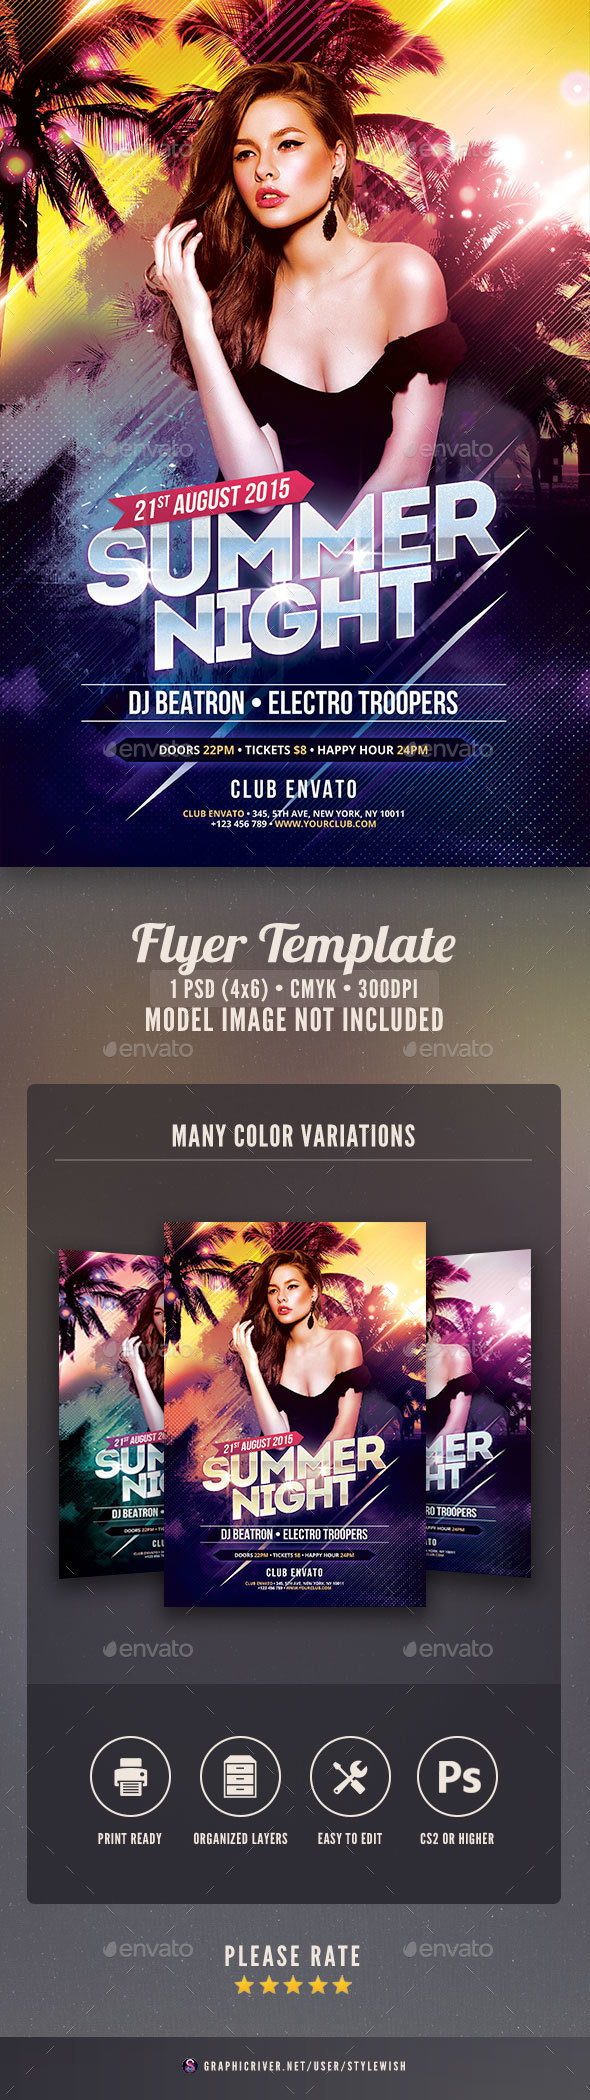 Summer Night Flyer - Clubs & Parties Events